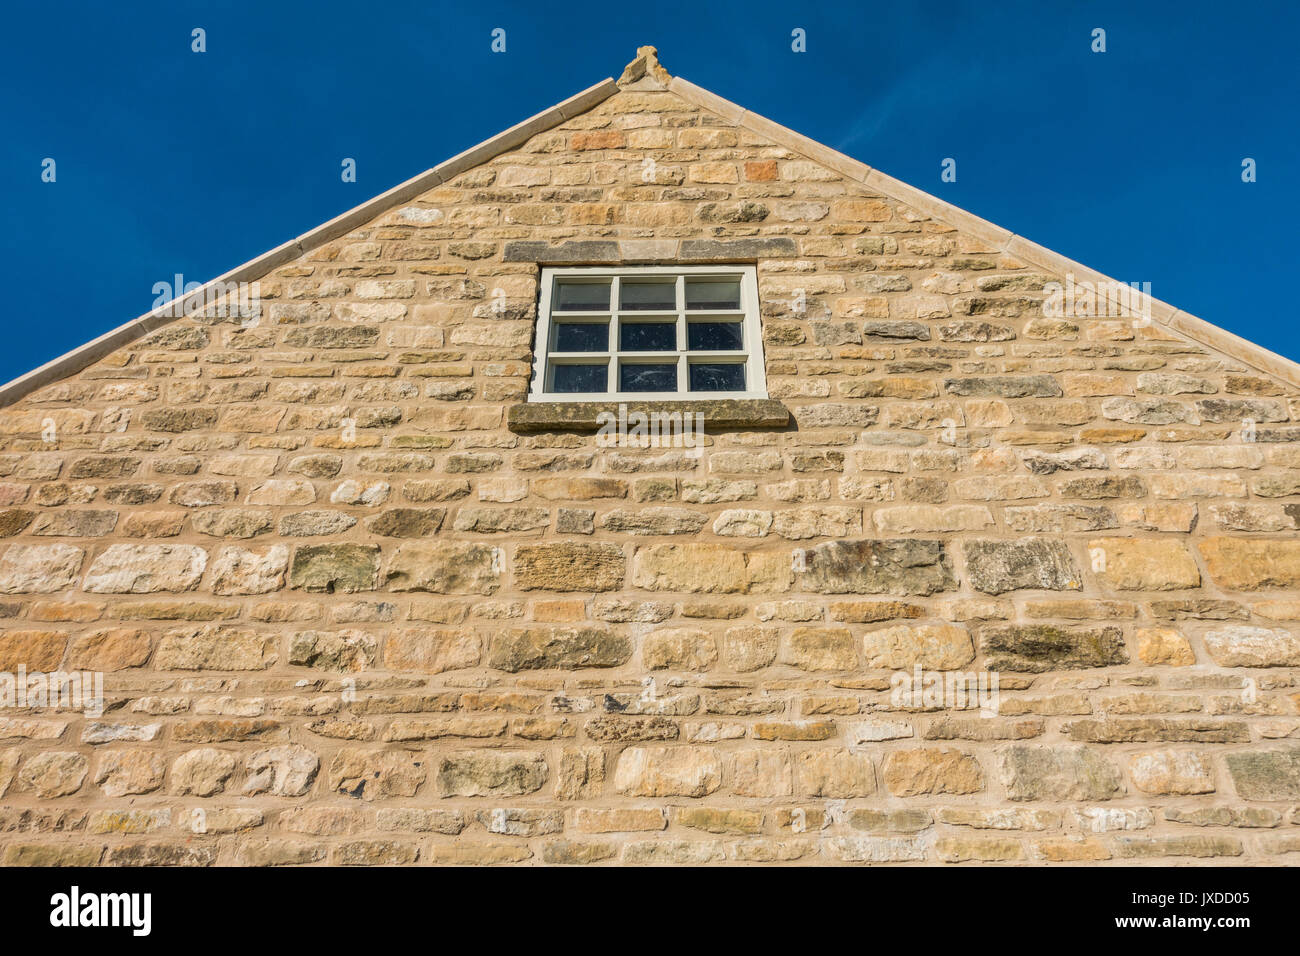 The gable end wall of a barn conversion against a vivid blue sky, Langtoft, near Peterborough, Lincolnvshire, England, UK. - Stock Image